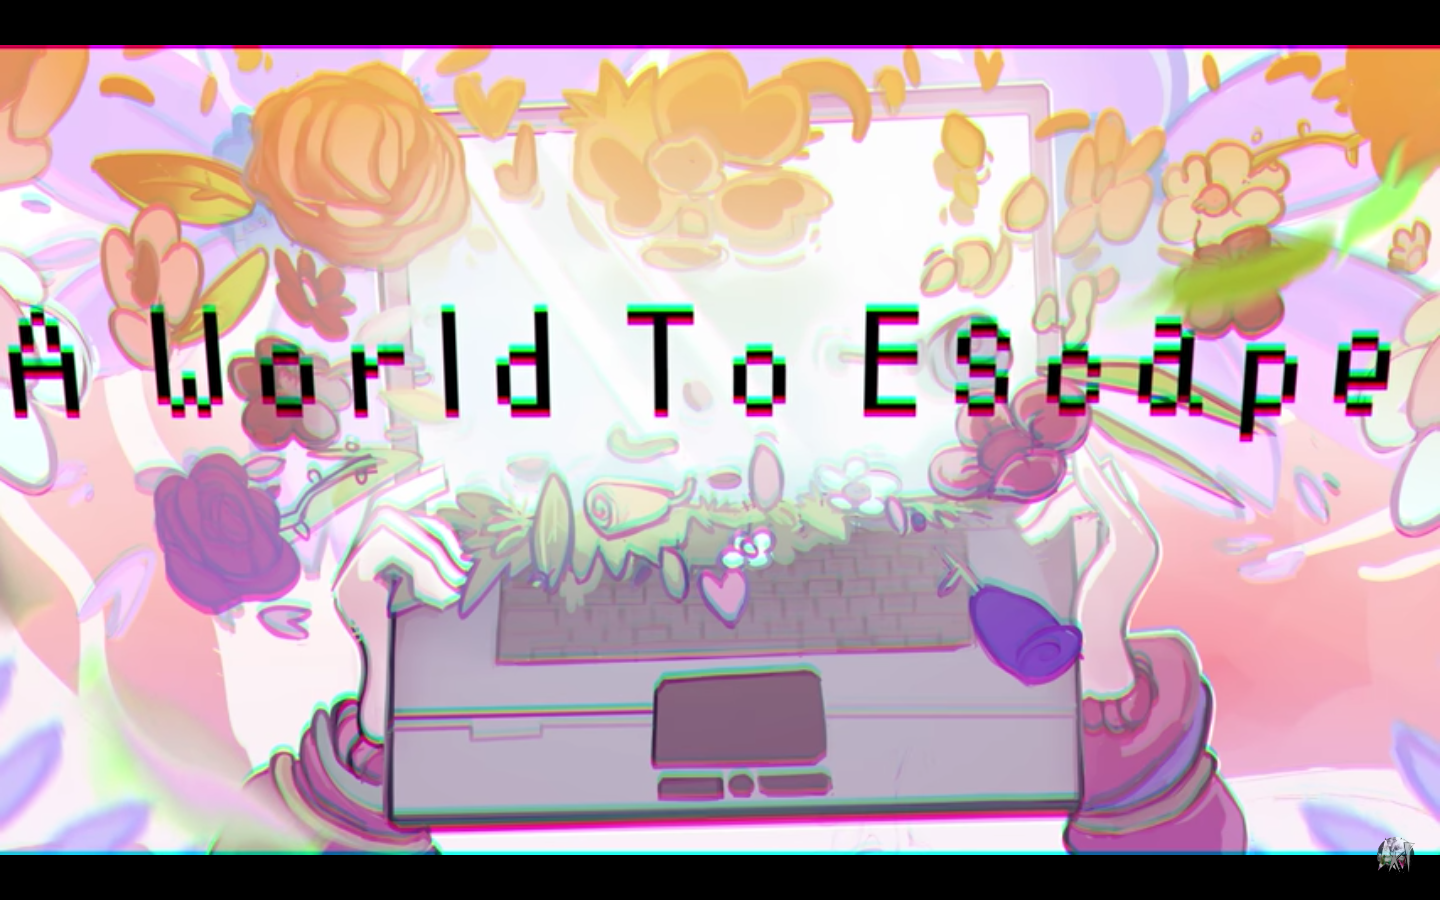 A World To Escape